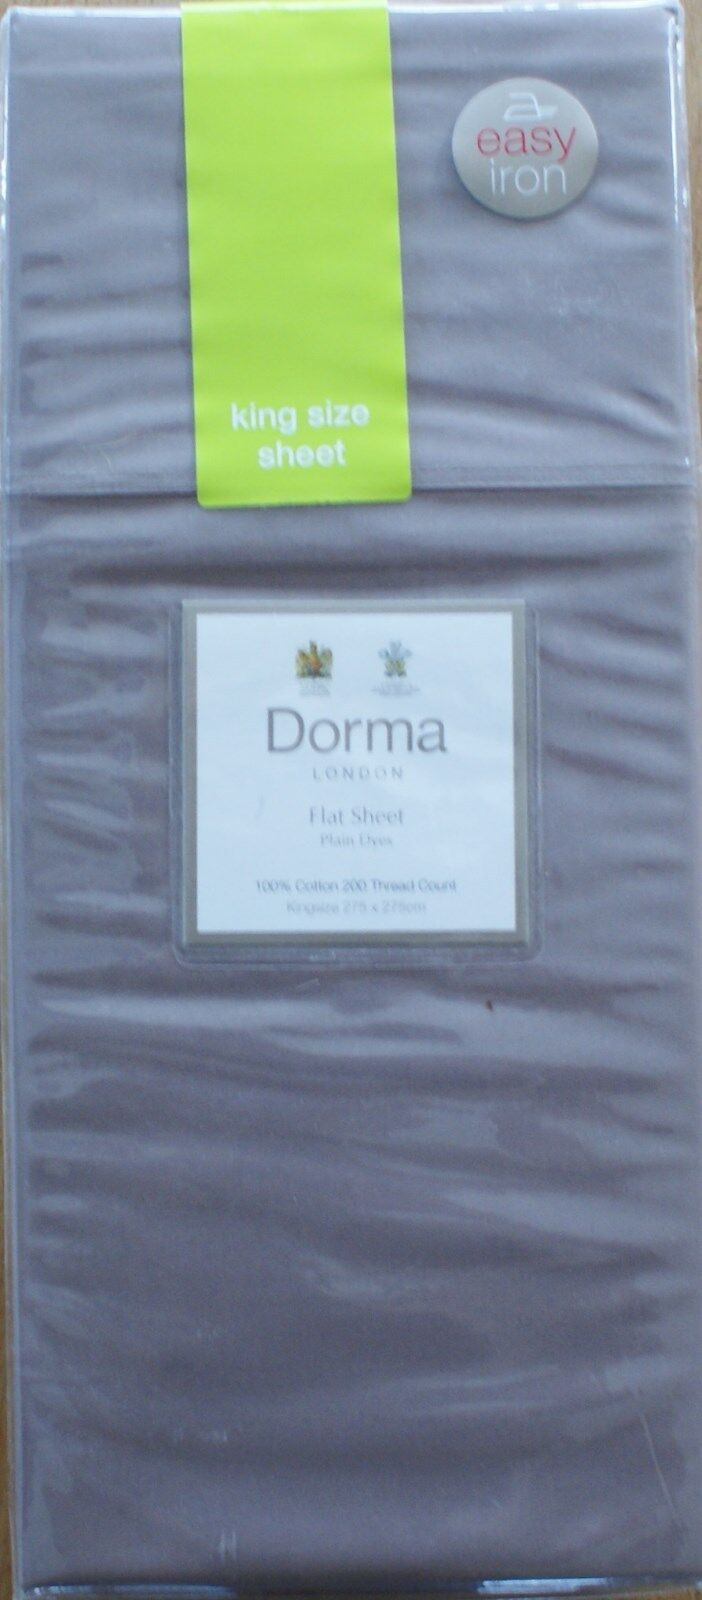 DORMA London Flat King Size Sheet Taupe 100% Cotton 200 Thread Count Brown